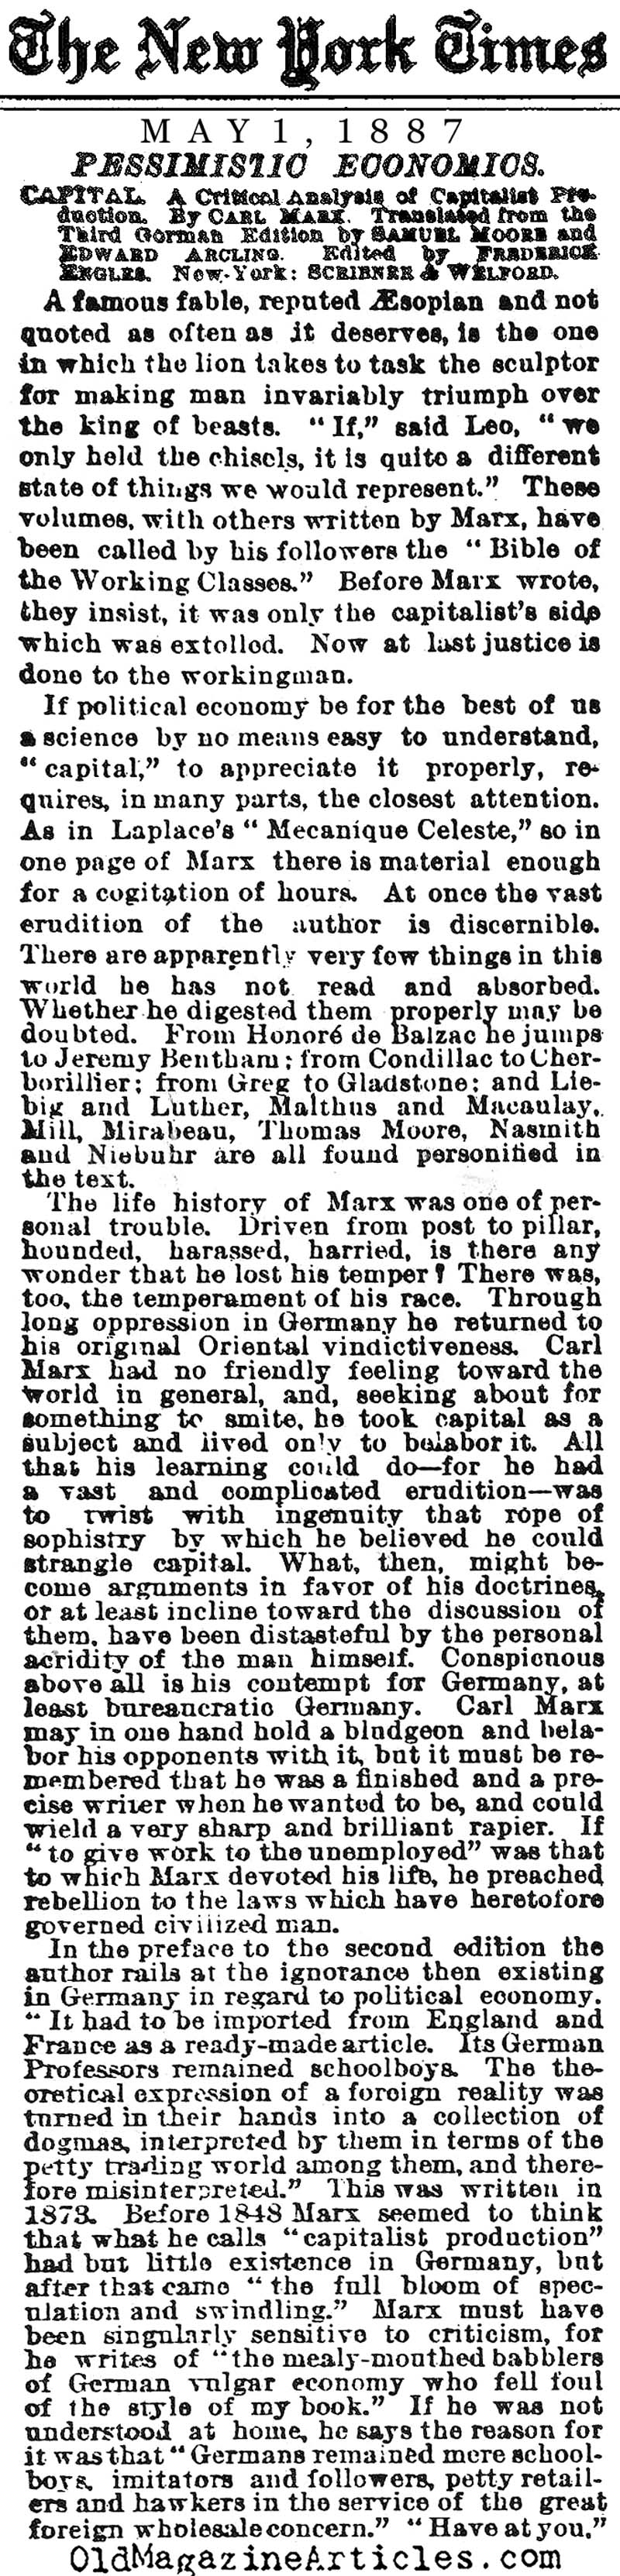 Karl Marx Reviewed (NY Times, 1887)